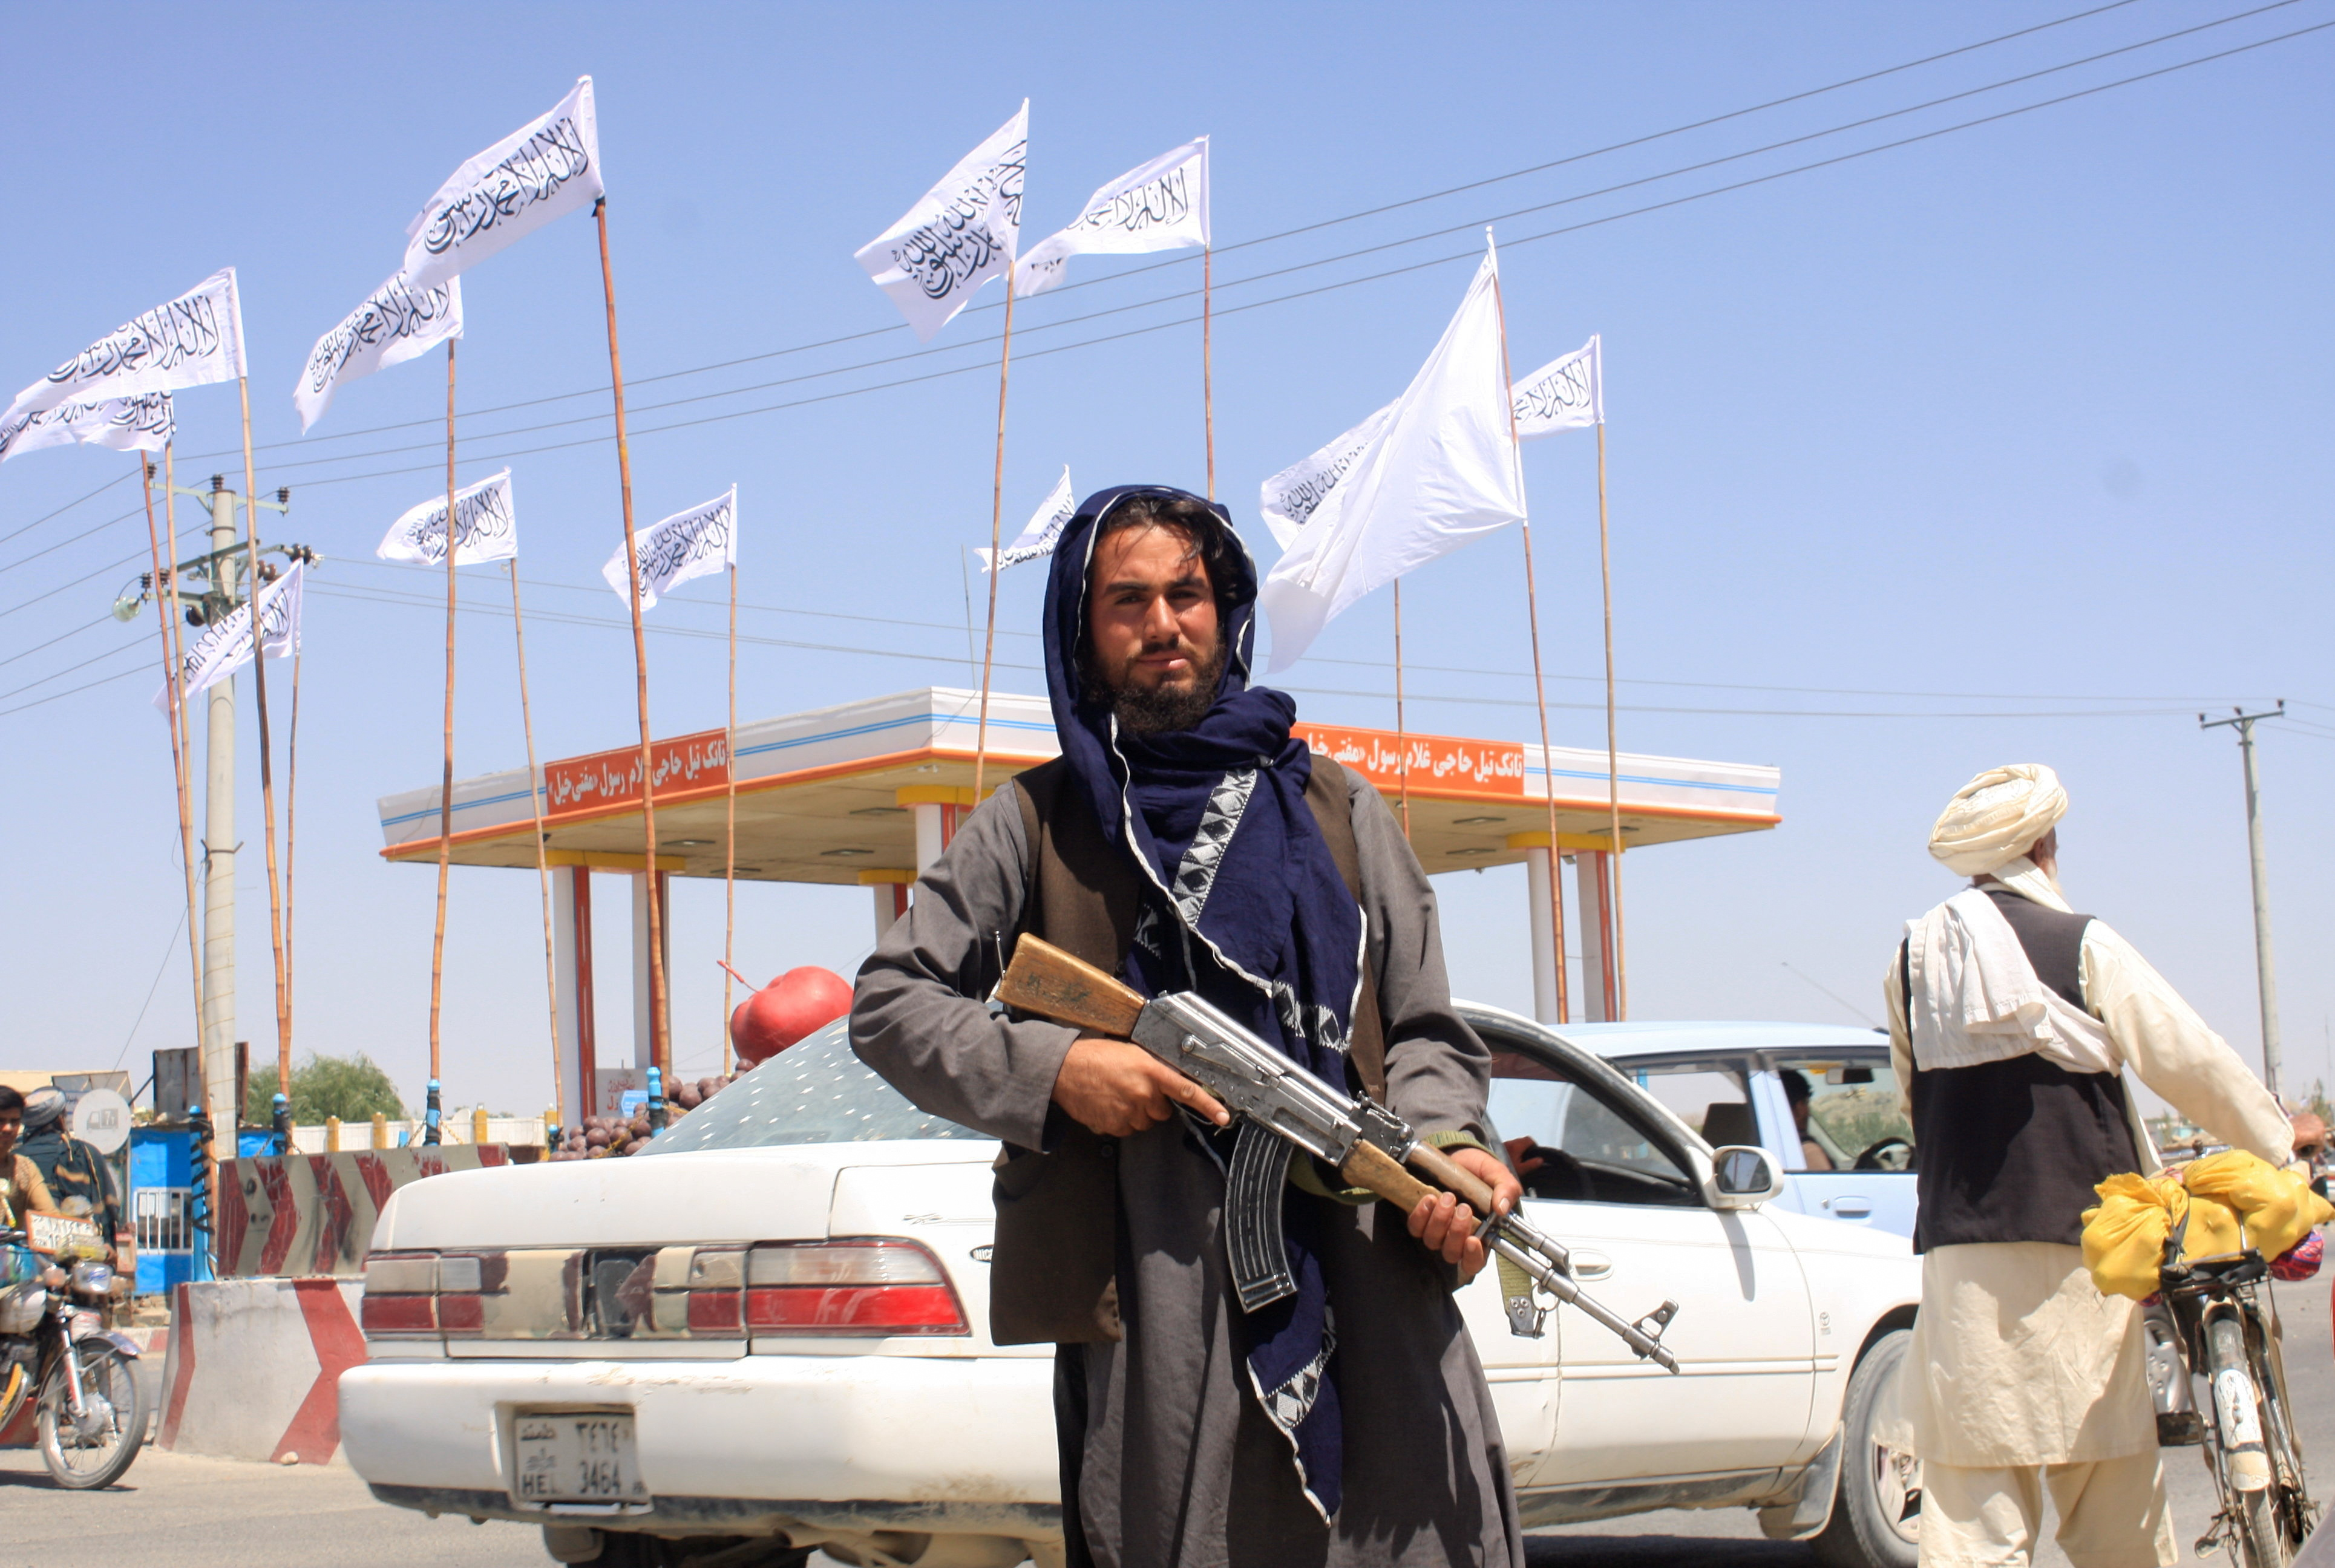 A Taliban fighter looks on as he stands at the city of Ghazni, Afghanistan August 14, 2021. REUTERS/Stringer